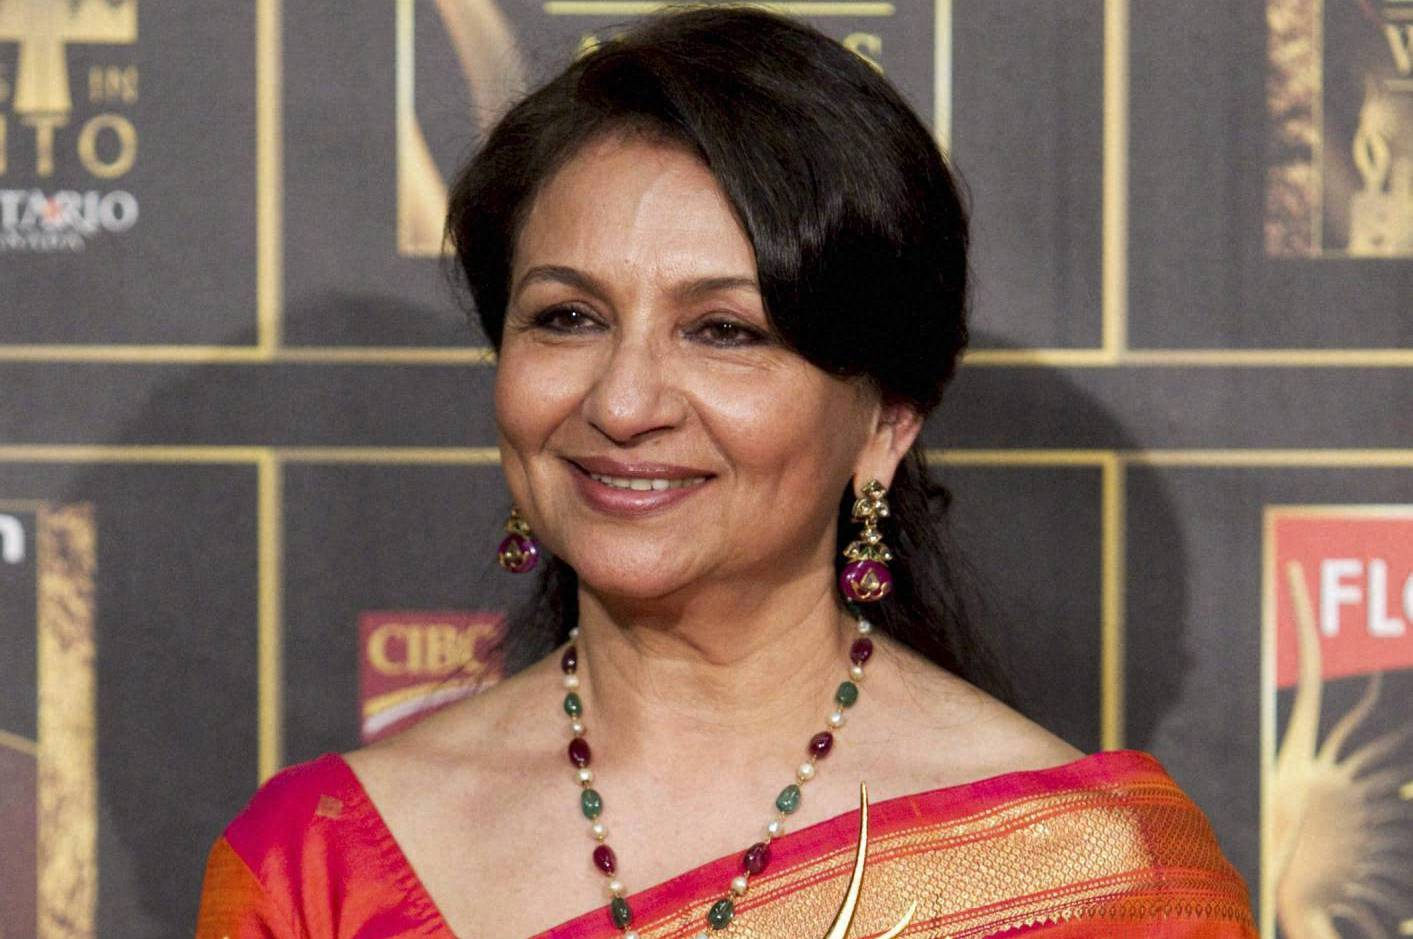 sharmila tagore songssharmila tagore wikipedia, sharmila tagore biography, sharmila tagore instagram, sharmila tagore profile, sharmila tagore, sharmila tagore songs, sharmila tagore wiki, sharmila tagore husband, sharmila tagore young, sharmila tagore and saif ali khan, sharmila tagore wedding, sharmila tagore family tree, sharmila tagore hot, sharmila tagore net worth, sharmila tagore images, sharmila tagore in bikini, sharmila tagore photos, sharmila tagore songs list, sharmila tagore hit songs, sharmila tagore movies list